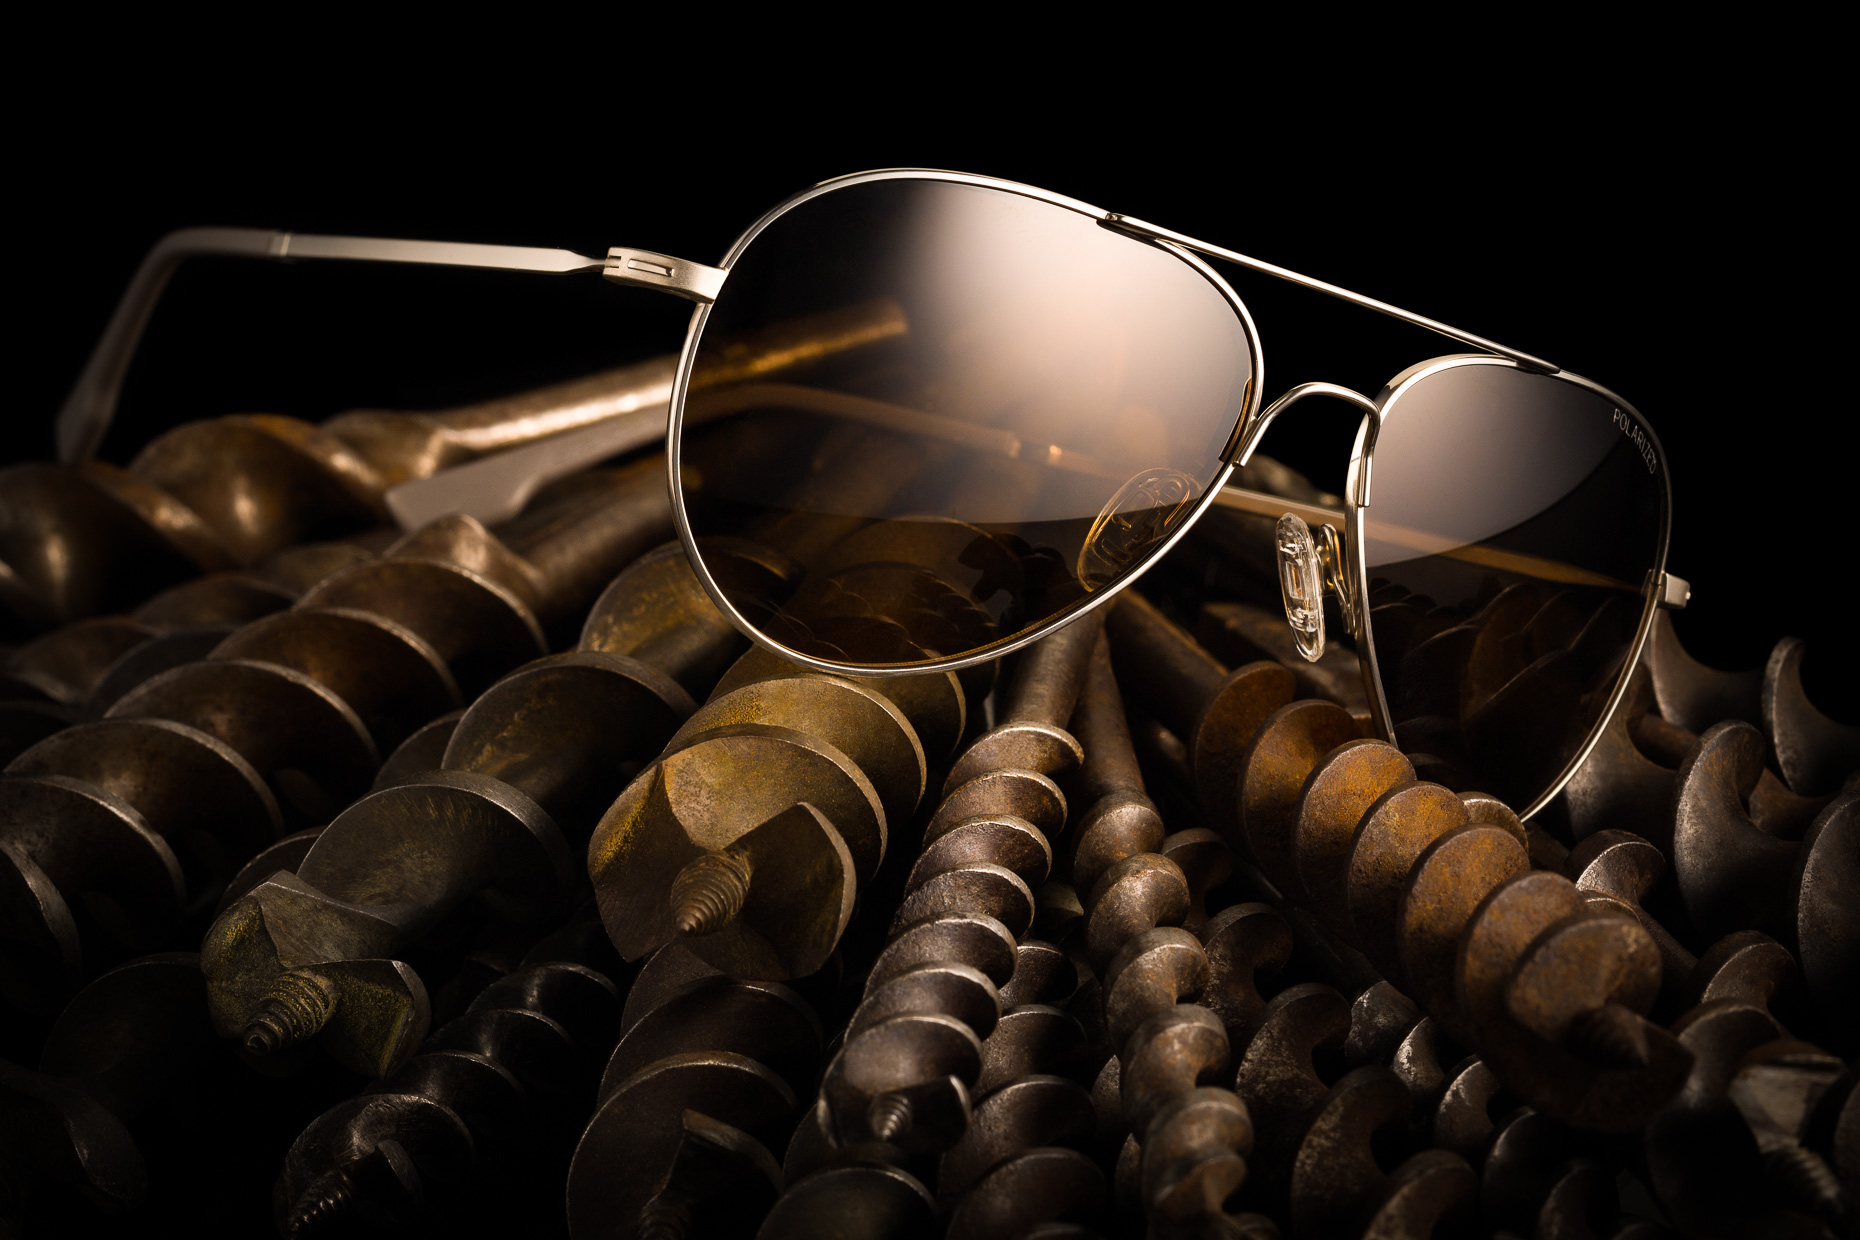 moody sunglasses lifestyle mens sunglasses conceptual photography still life with drill bit